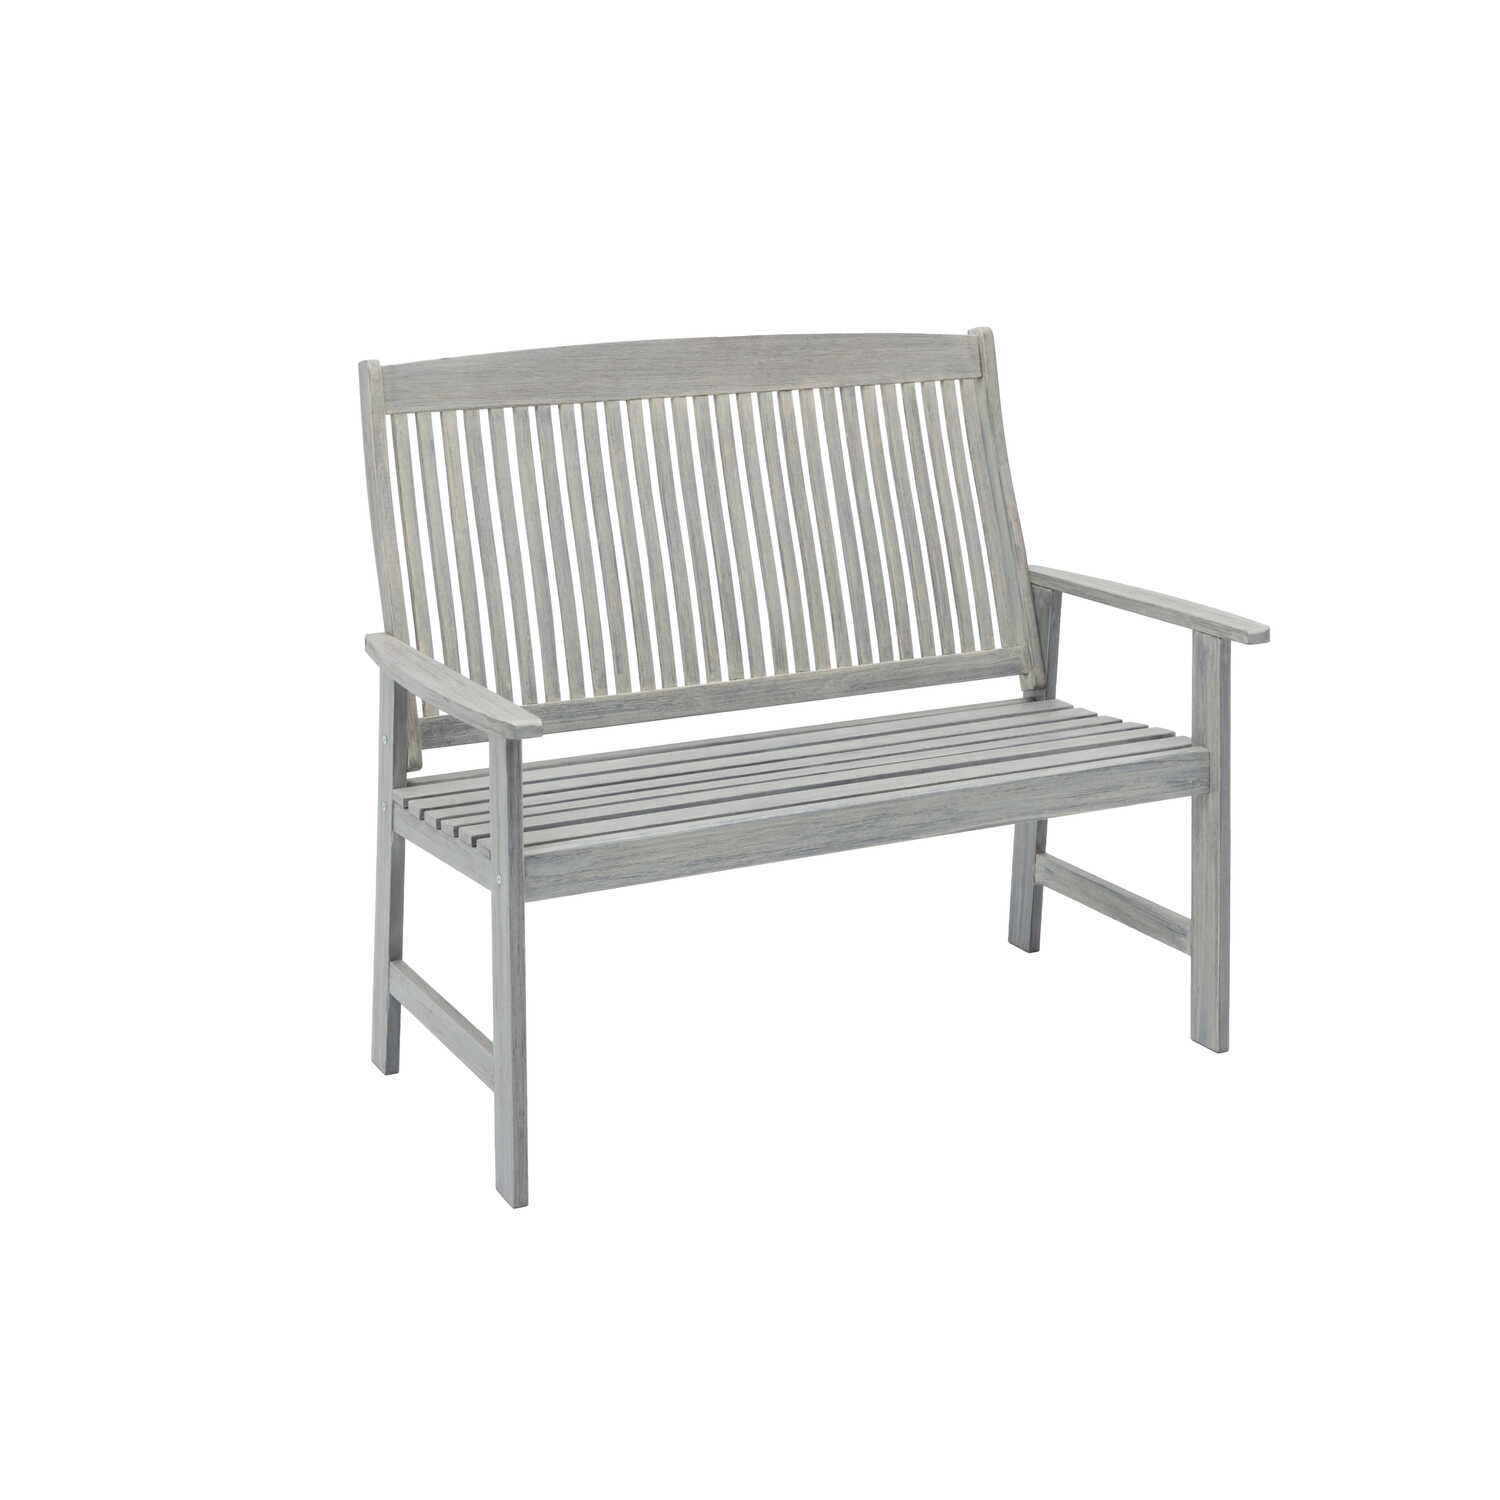 Jack Post  Park Bench  Wood  40.25 in. H x 28.75 in. L x 47.25 in. D